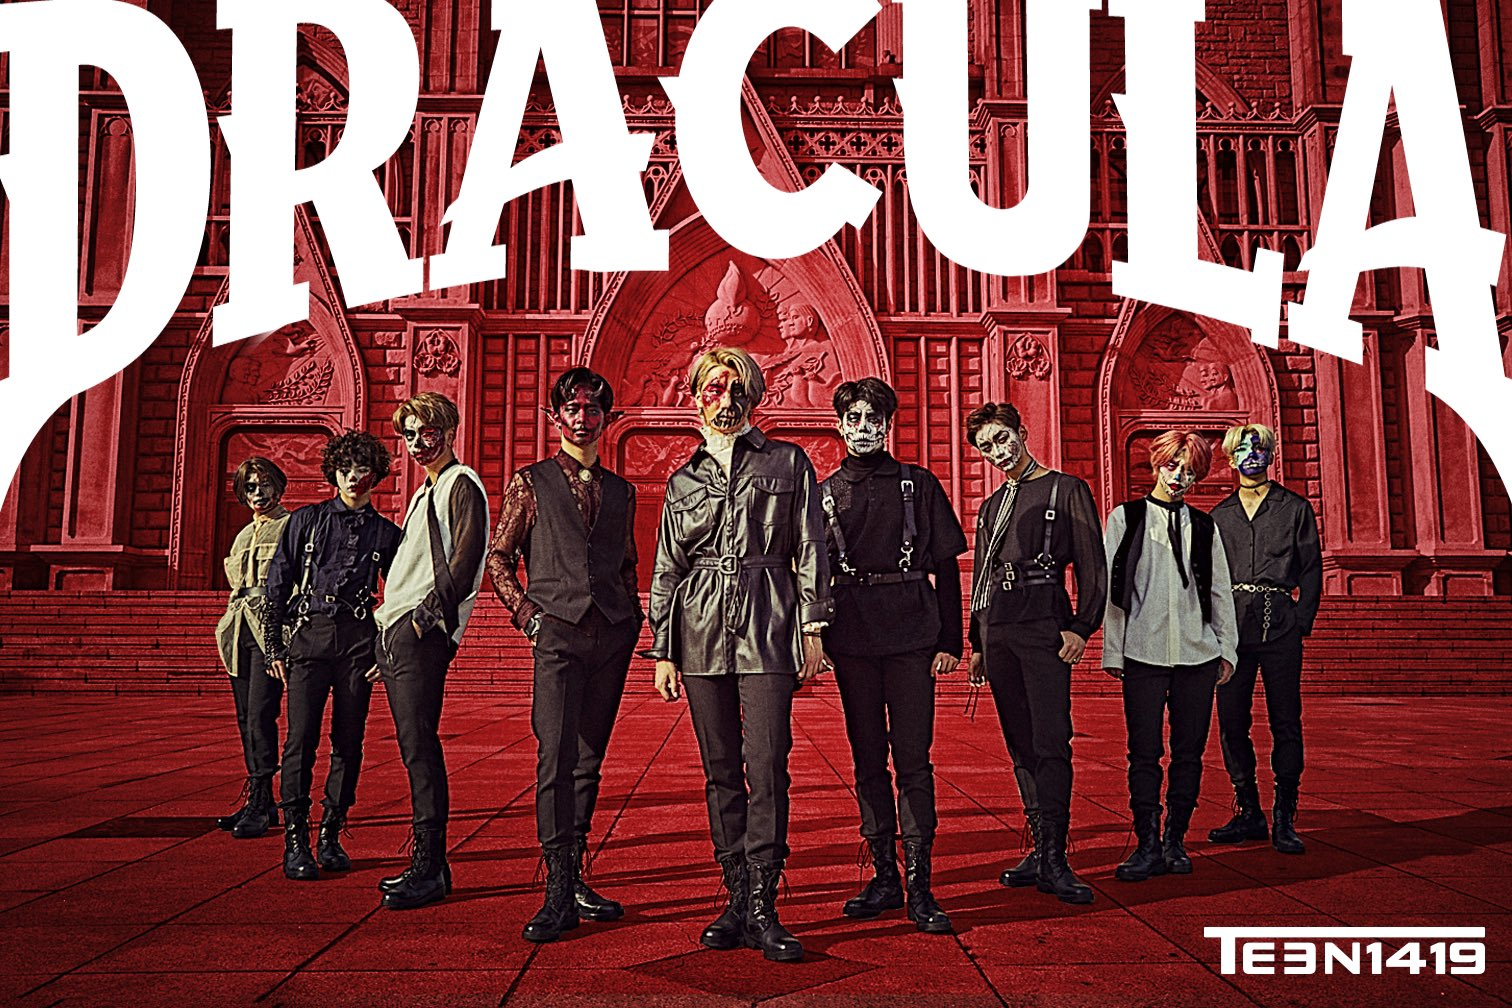 T1419 Dracula Teaser Posters (HQ) - K-Pop Database / dbkpop.com